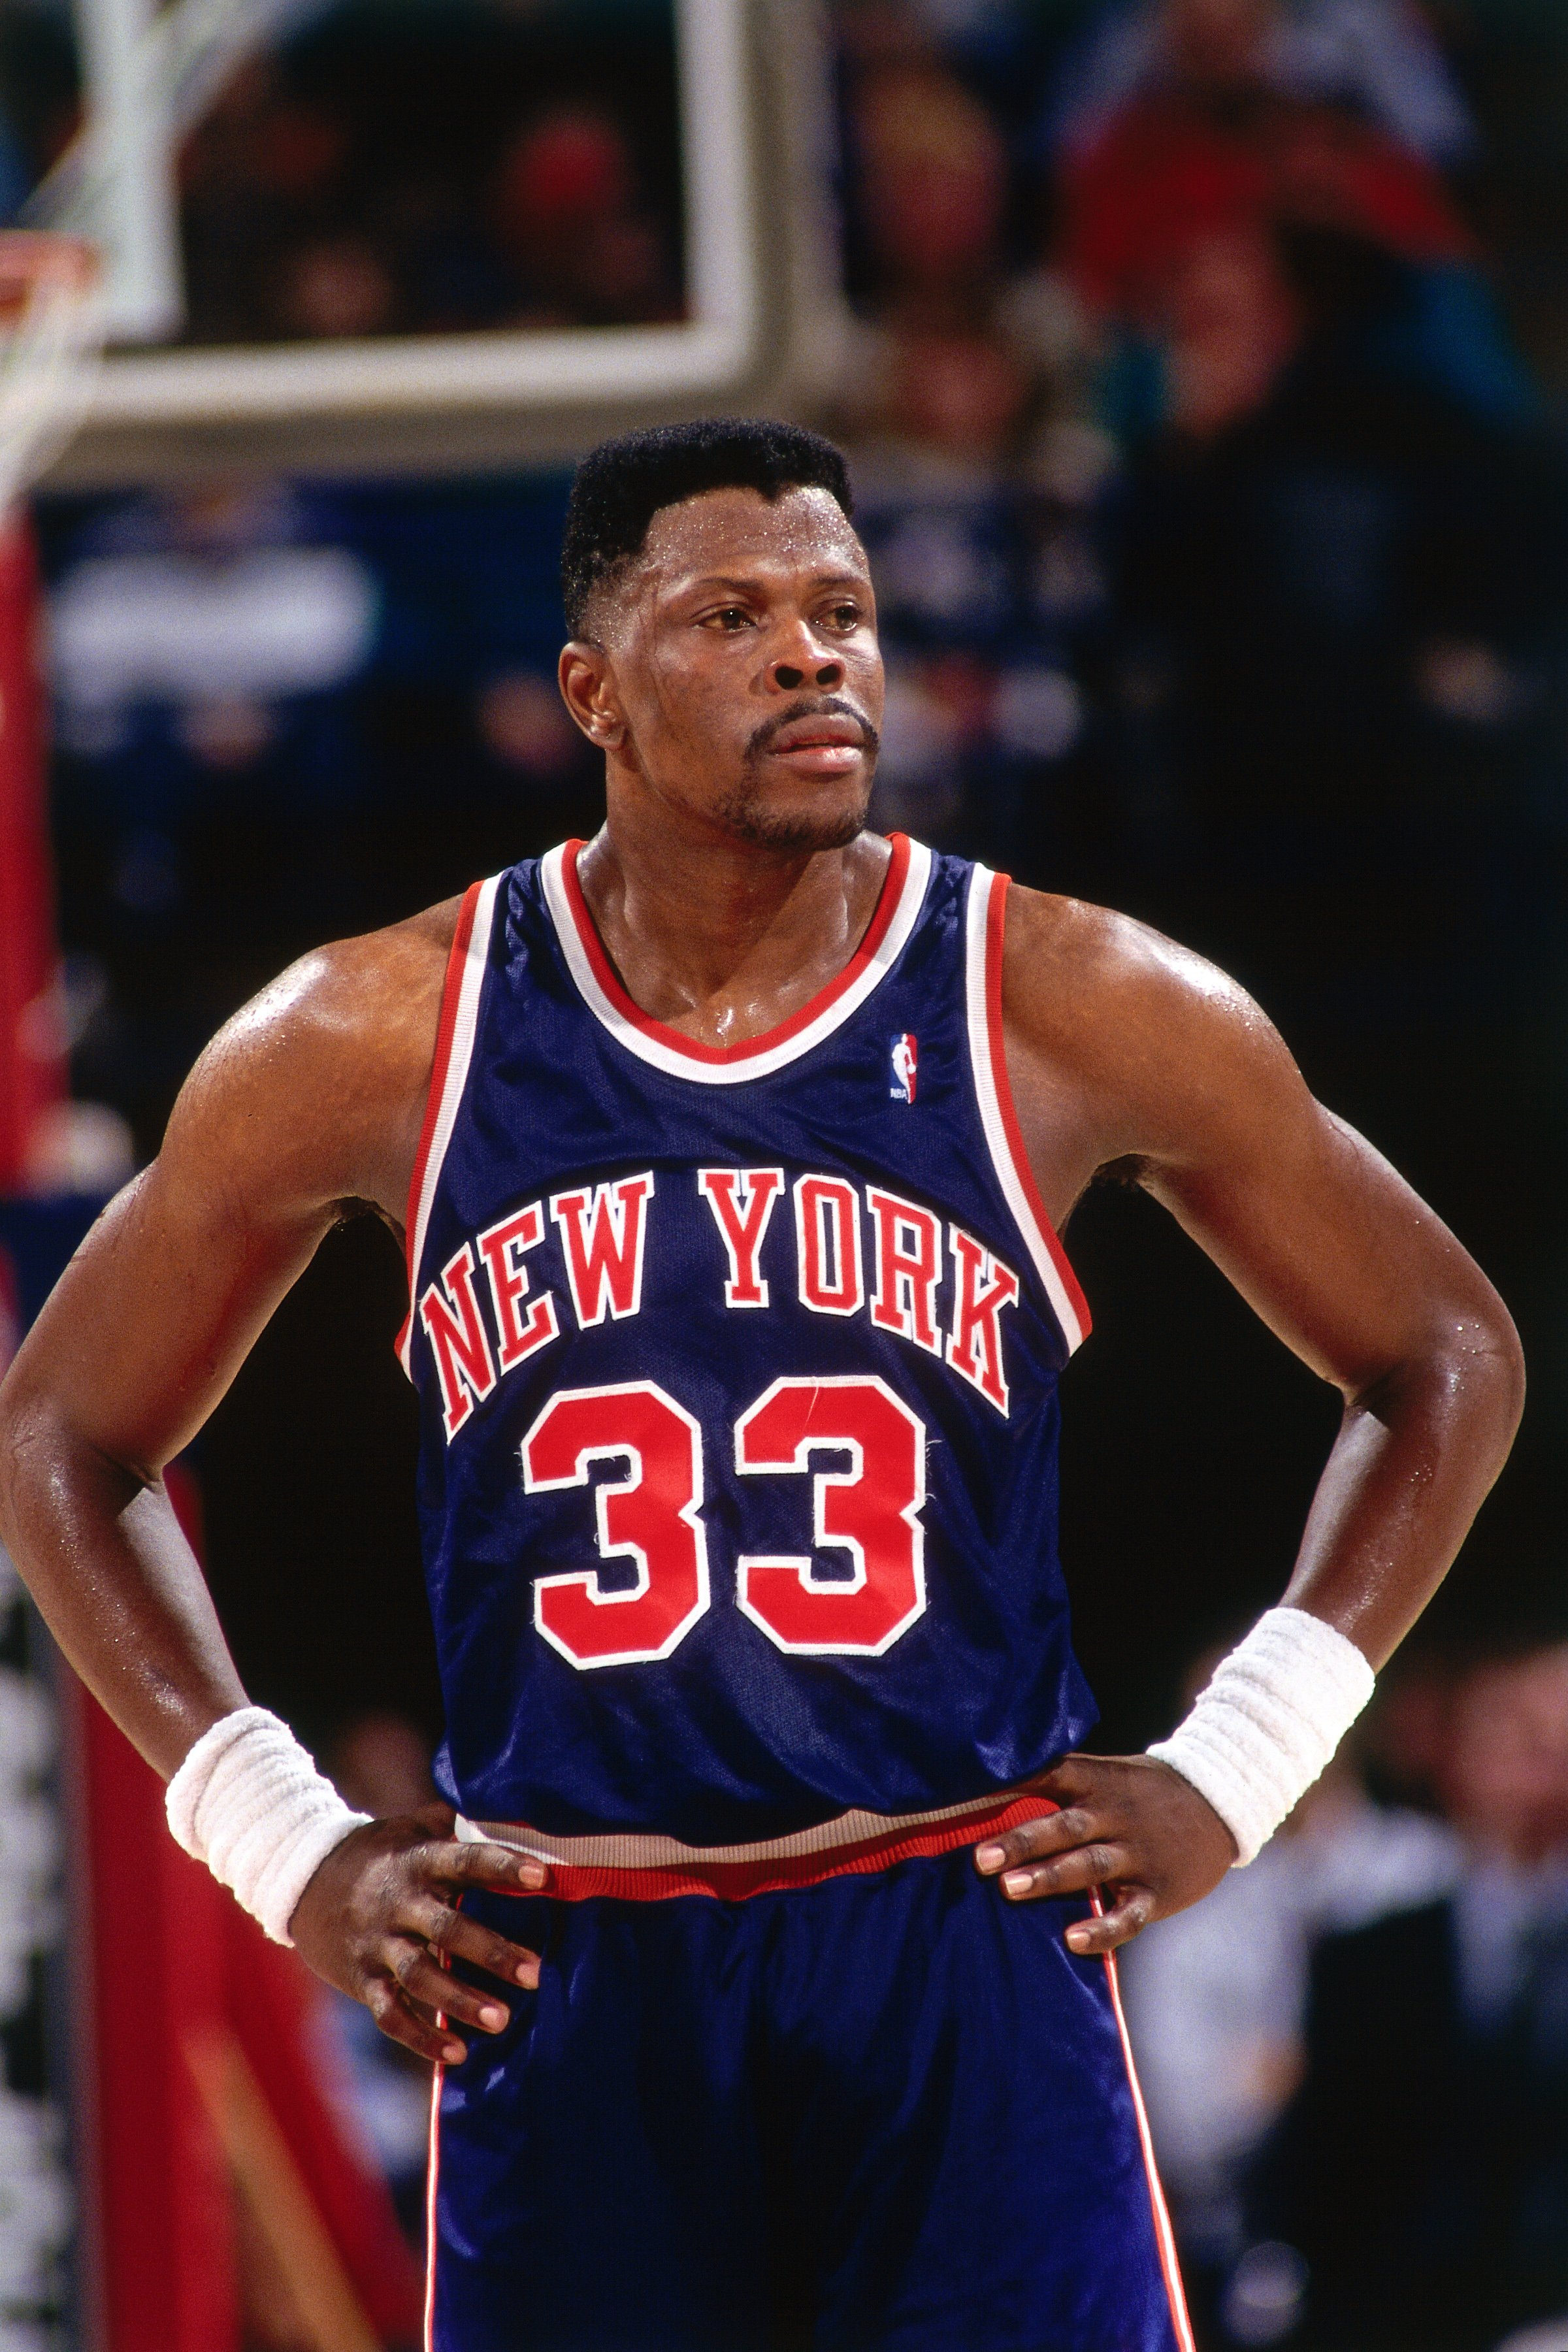 Patrick Ewing #33 of the New York Knicks looks on against the Sacramento Kings on January 12, 1993 in Sacramento, California. | Photo: GettyImages